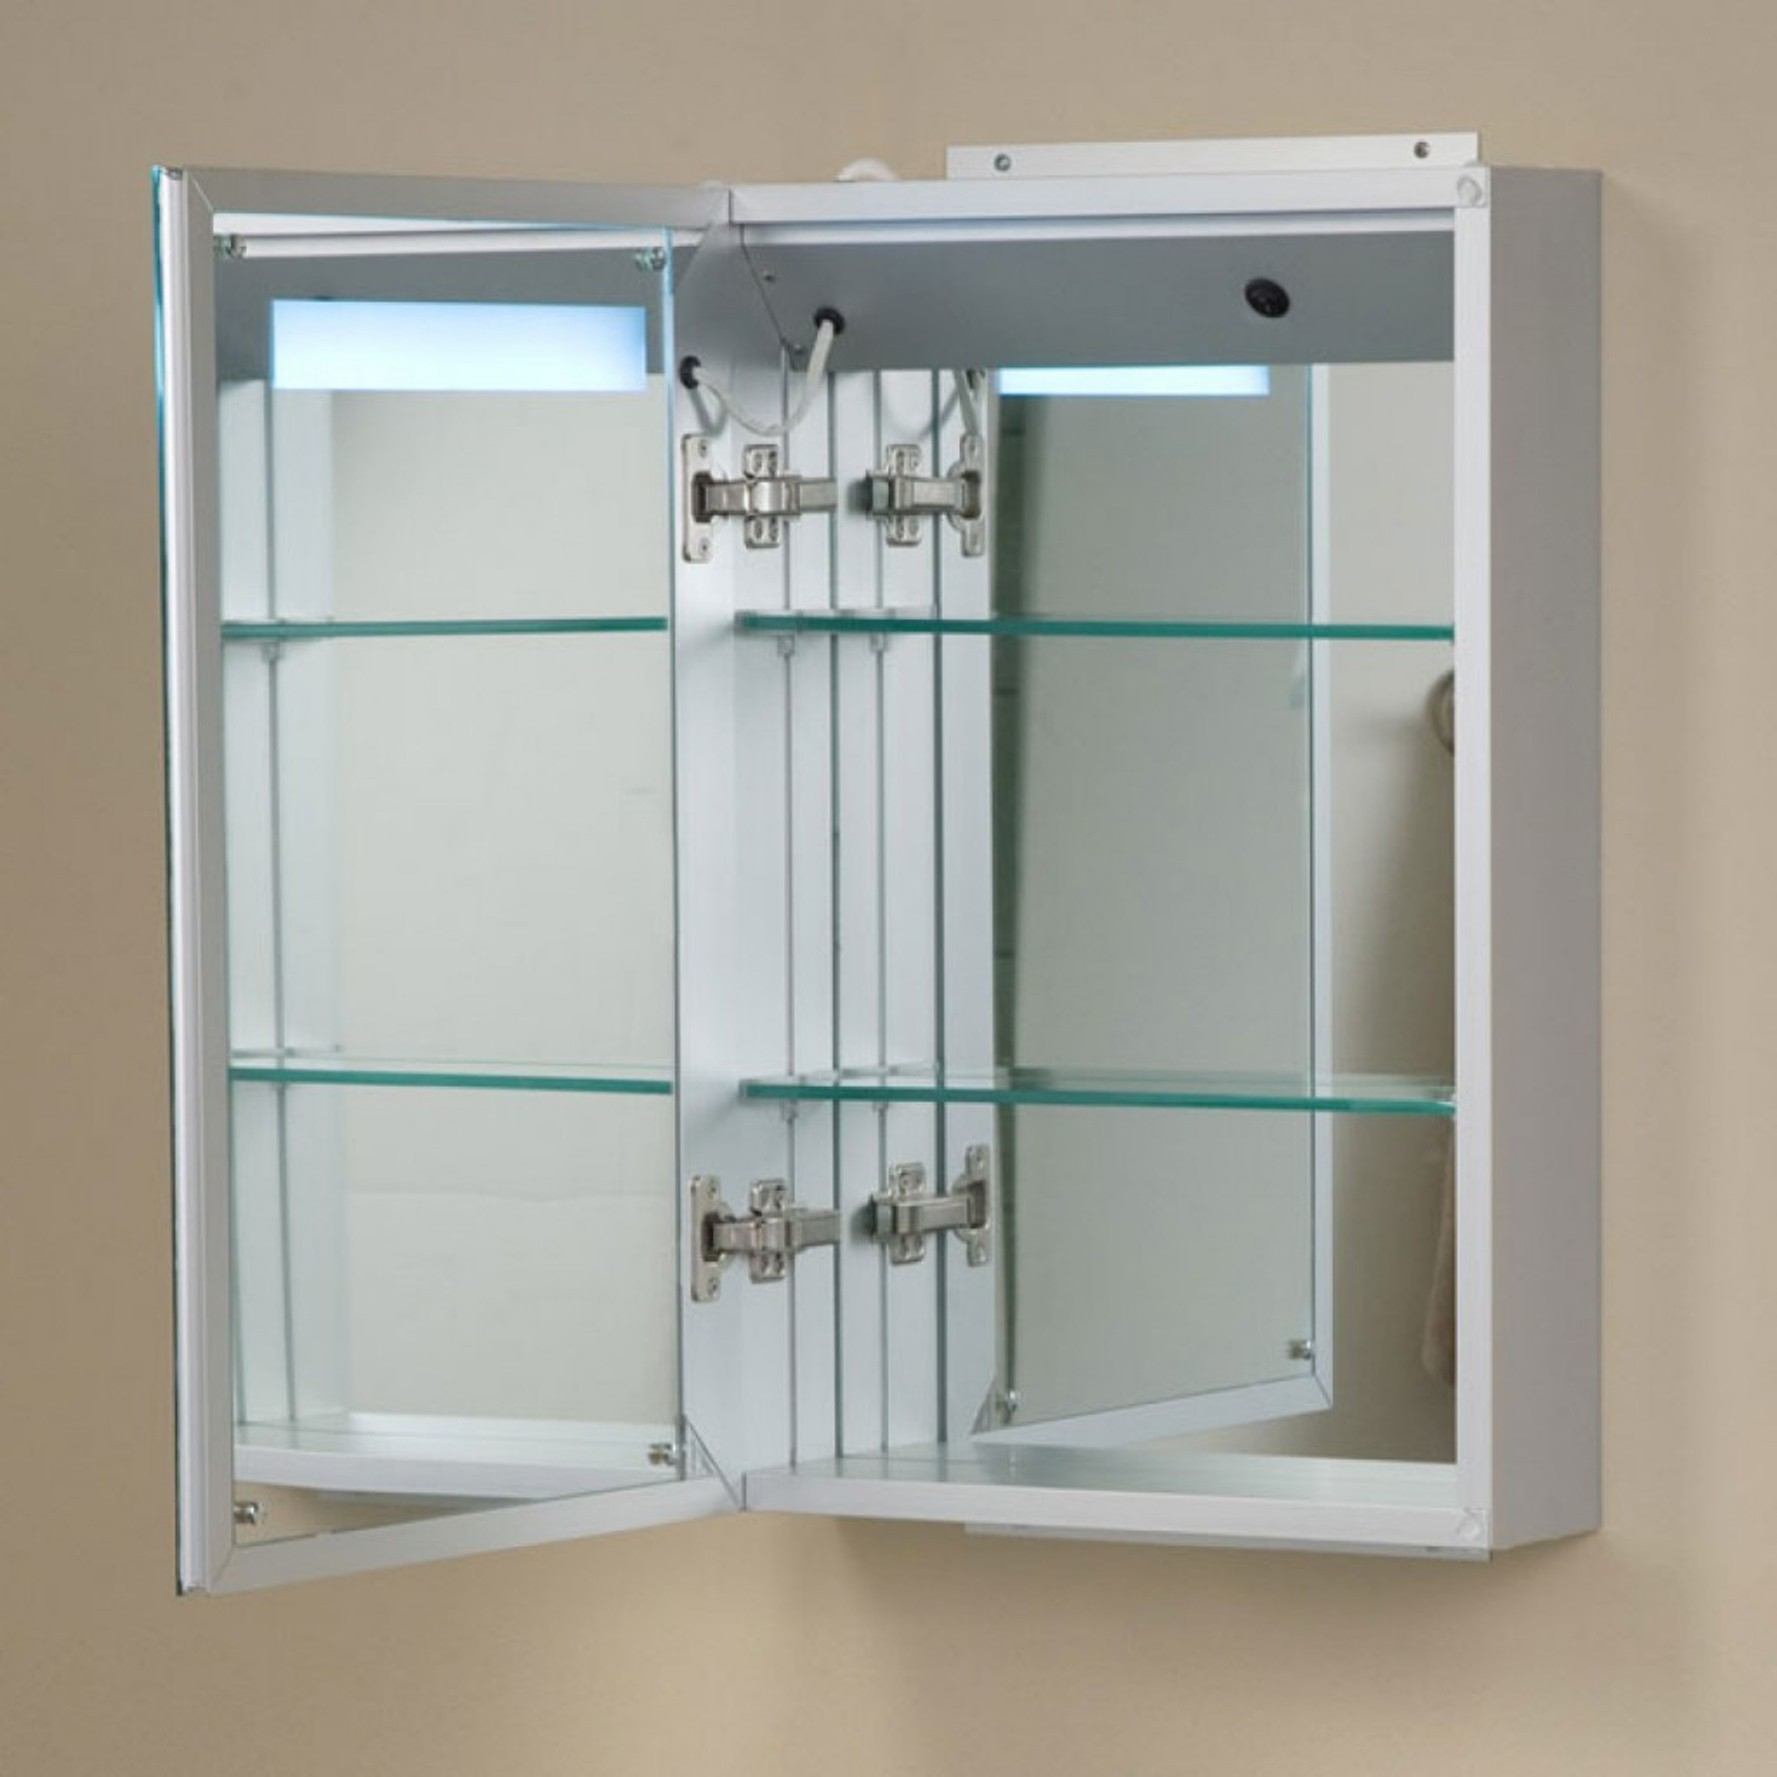 Bathroom Medicine Cabinets Glass Door